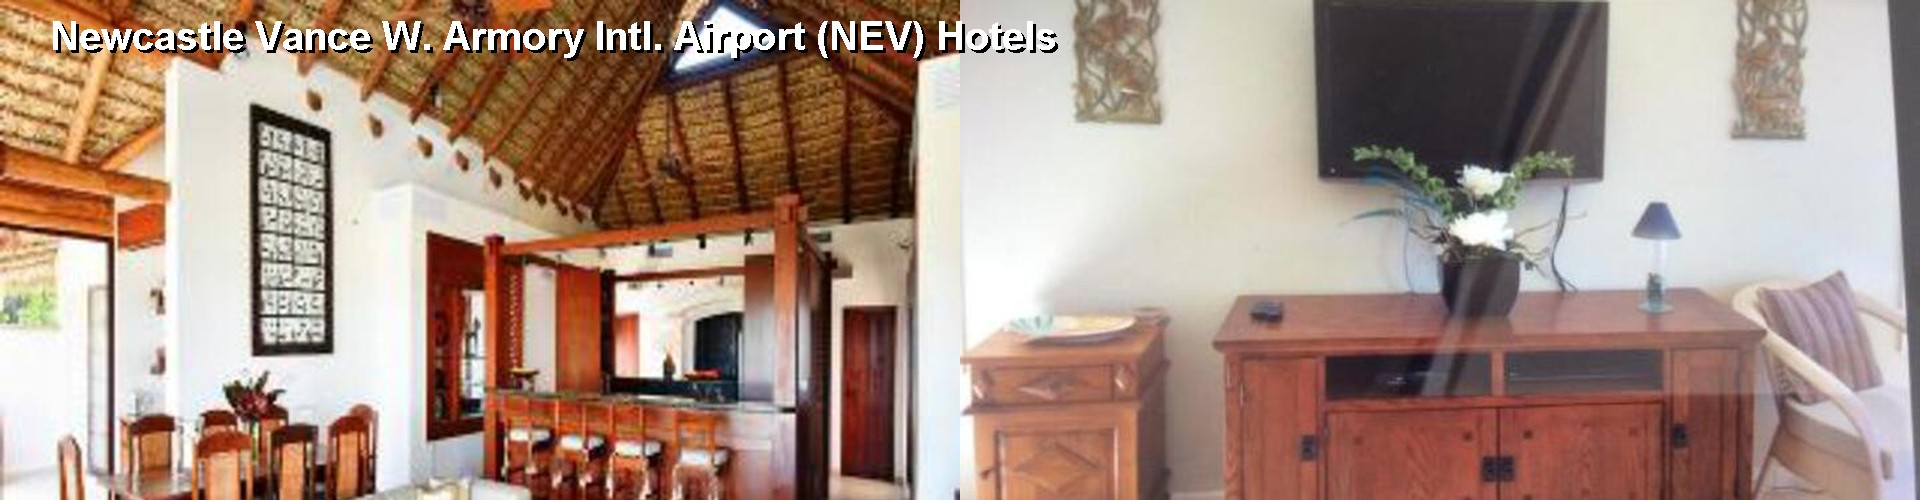 5 Best Hotels near Newcastle Vance W. Armory Intl. Airport (NEV)